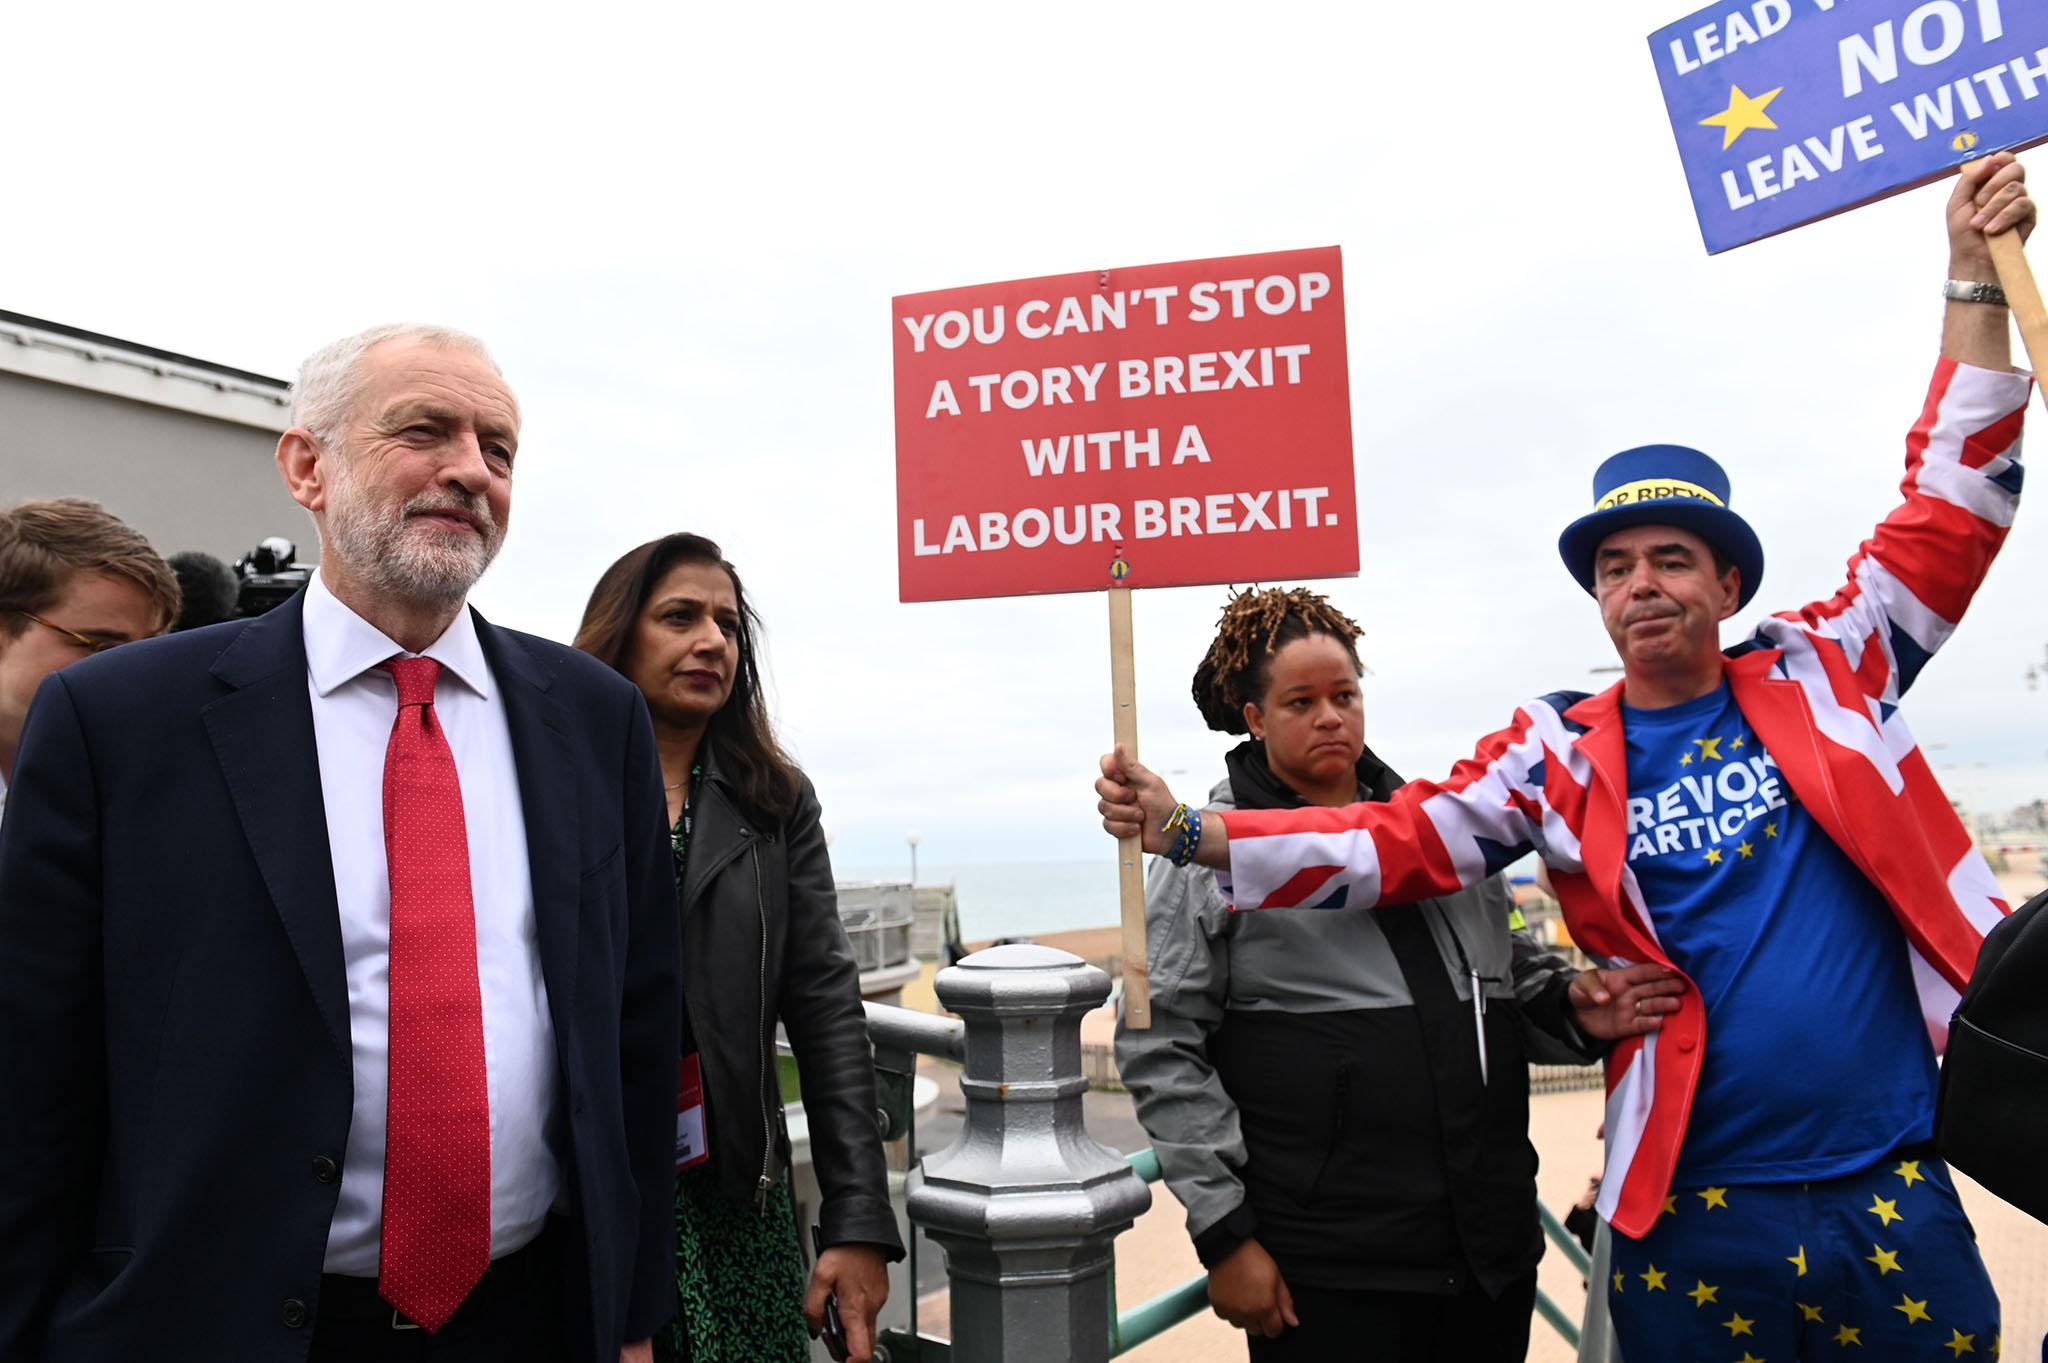 Labour leadership accused of 'stitch-up' over Brexit stance as row e…